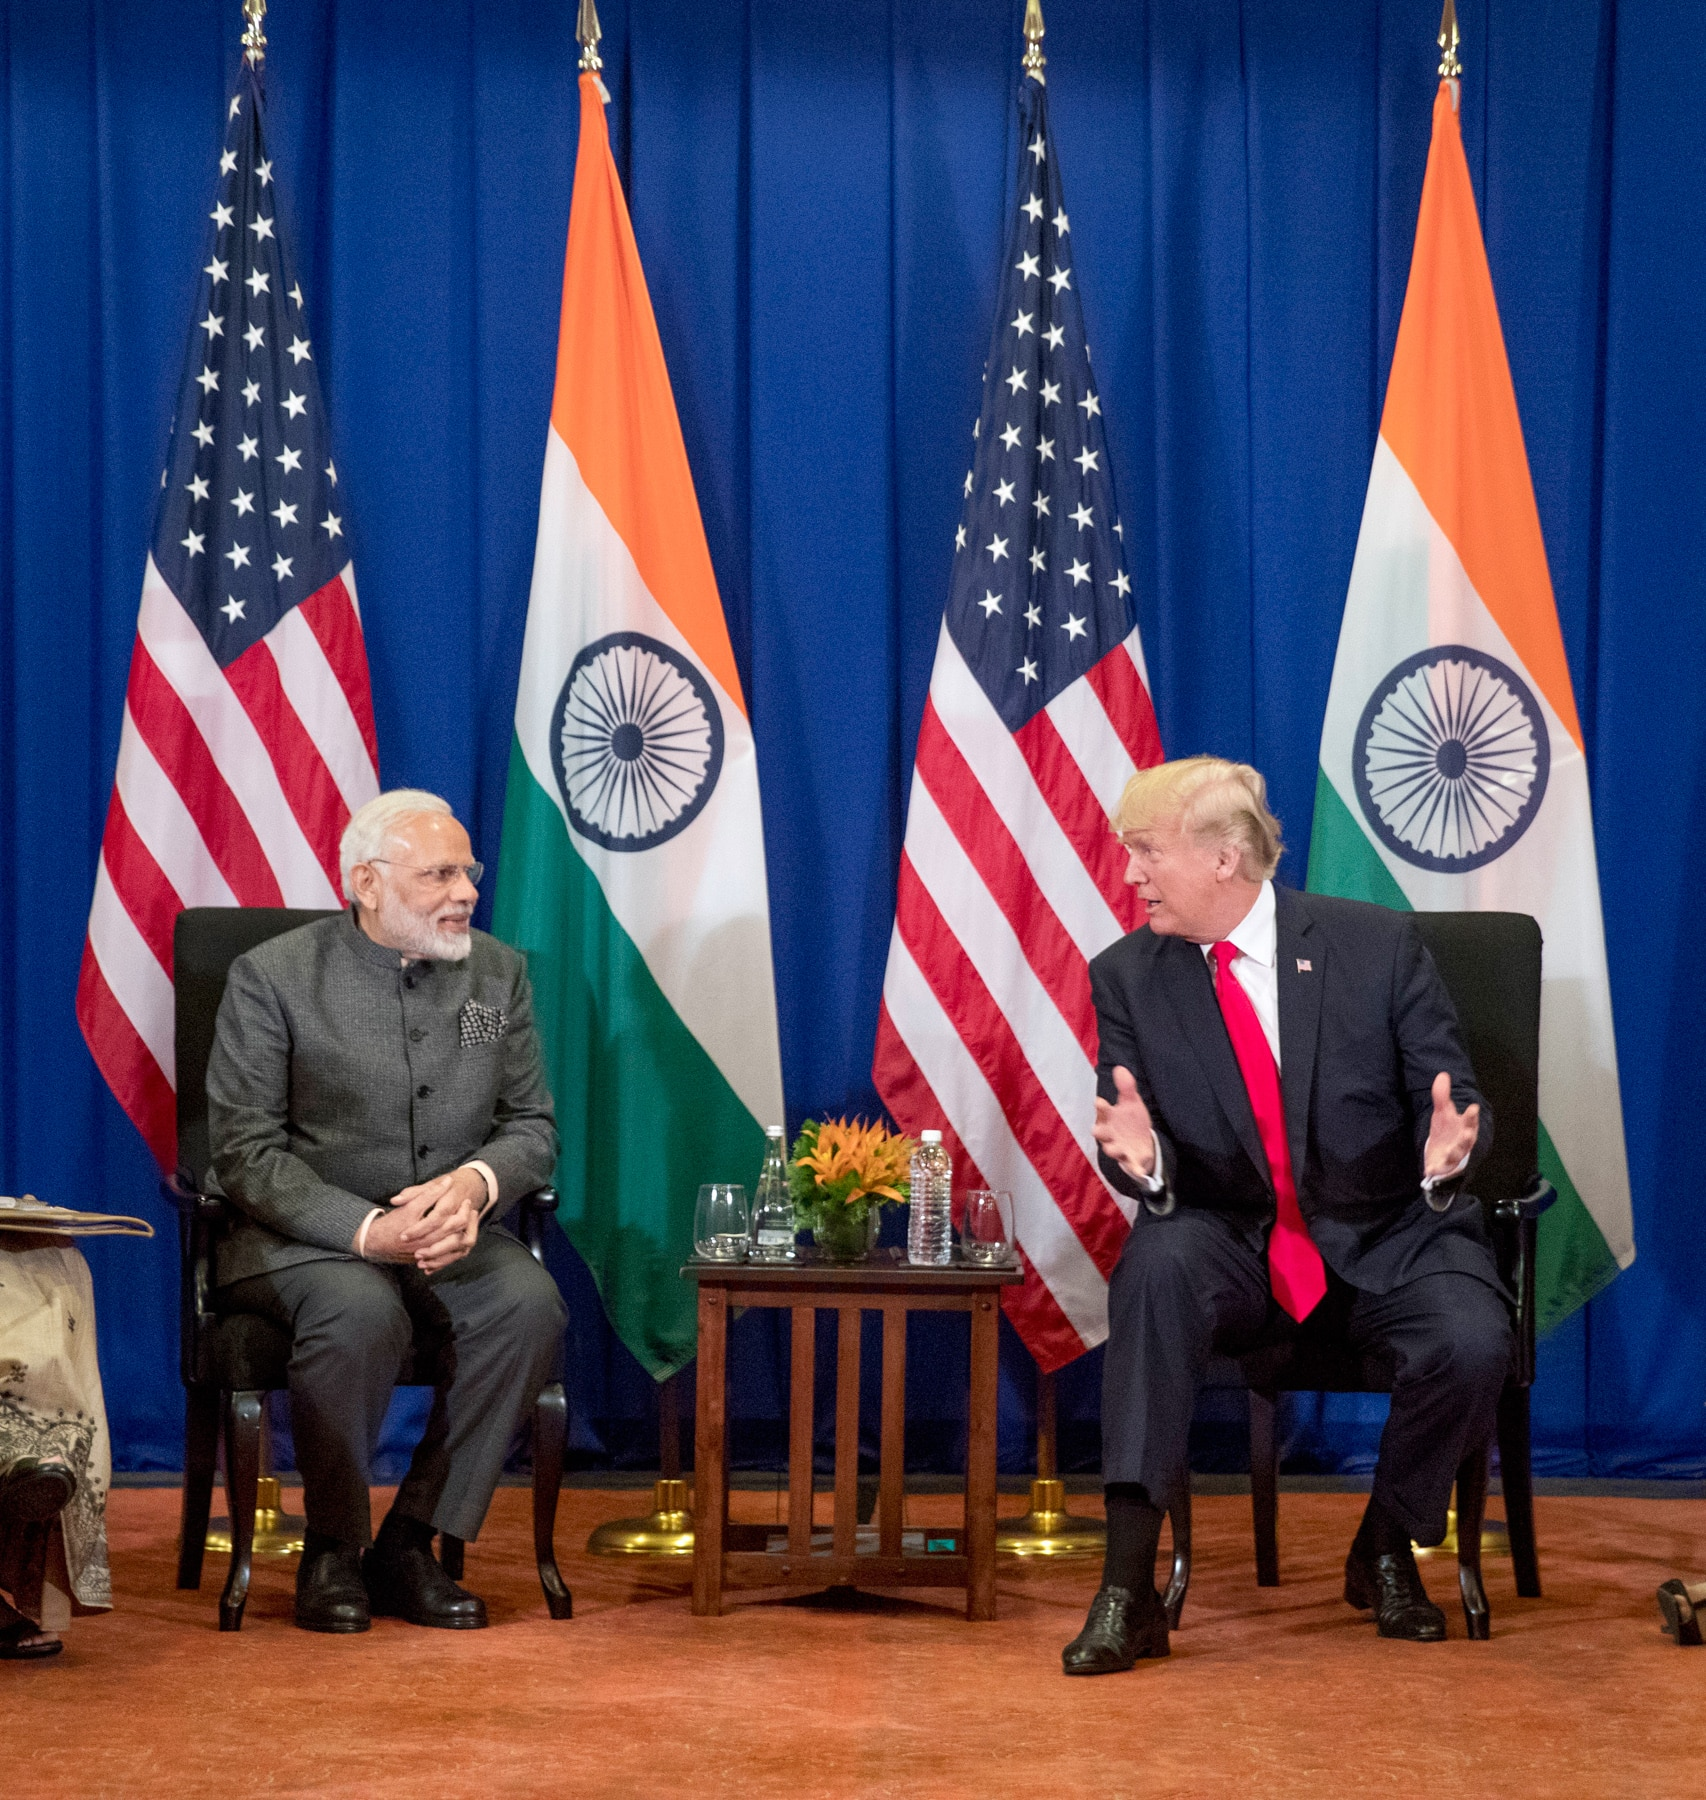 President Donald Trump, right, and Indian Prime Minister Narendra Modi speaking to each other while seated (© AP Images)